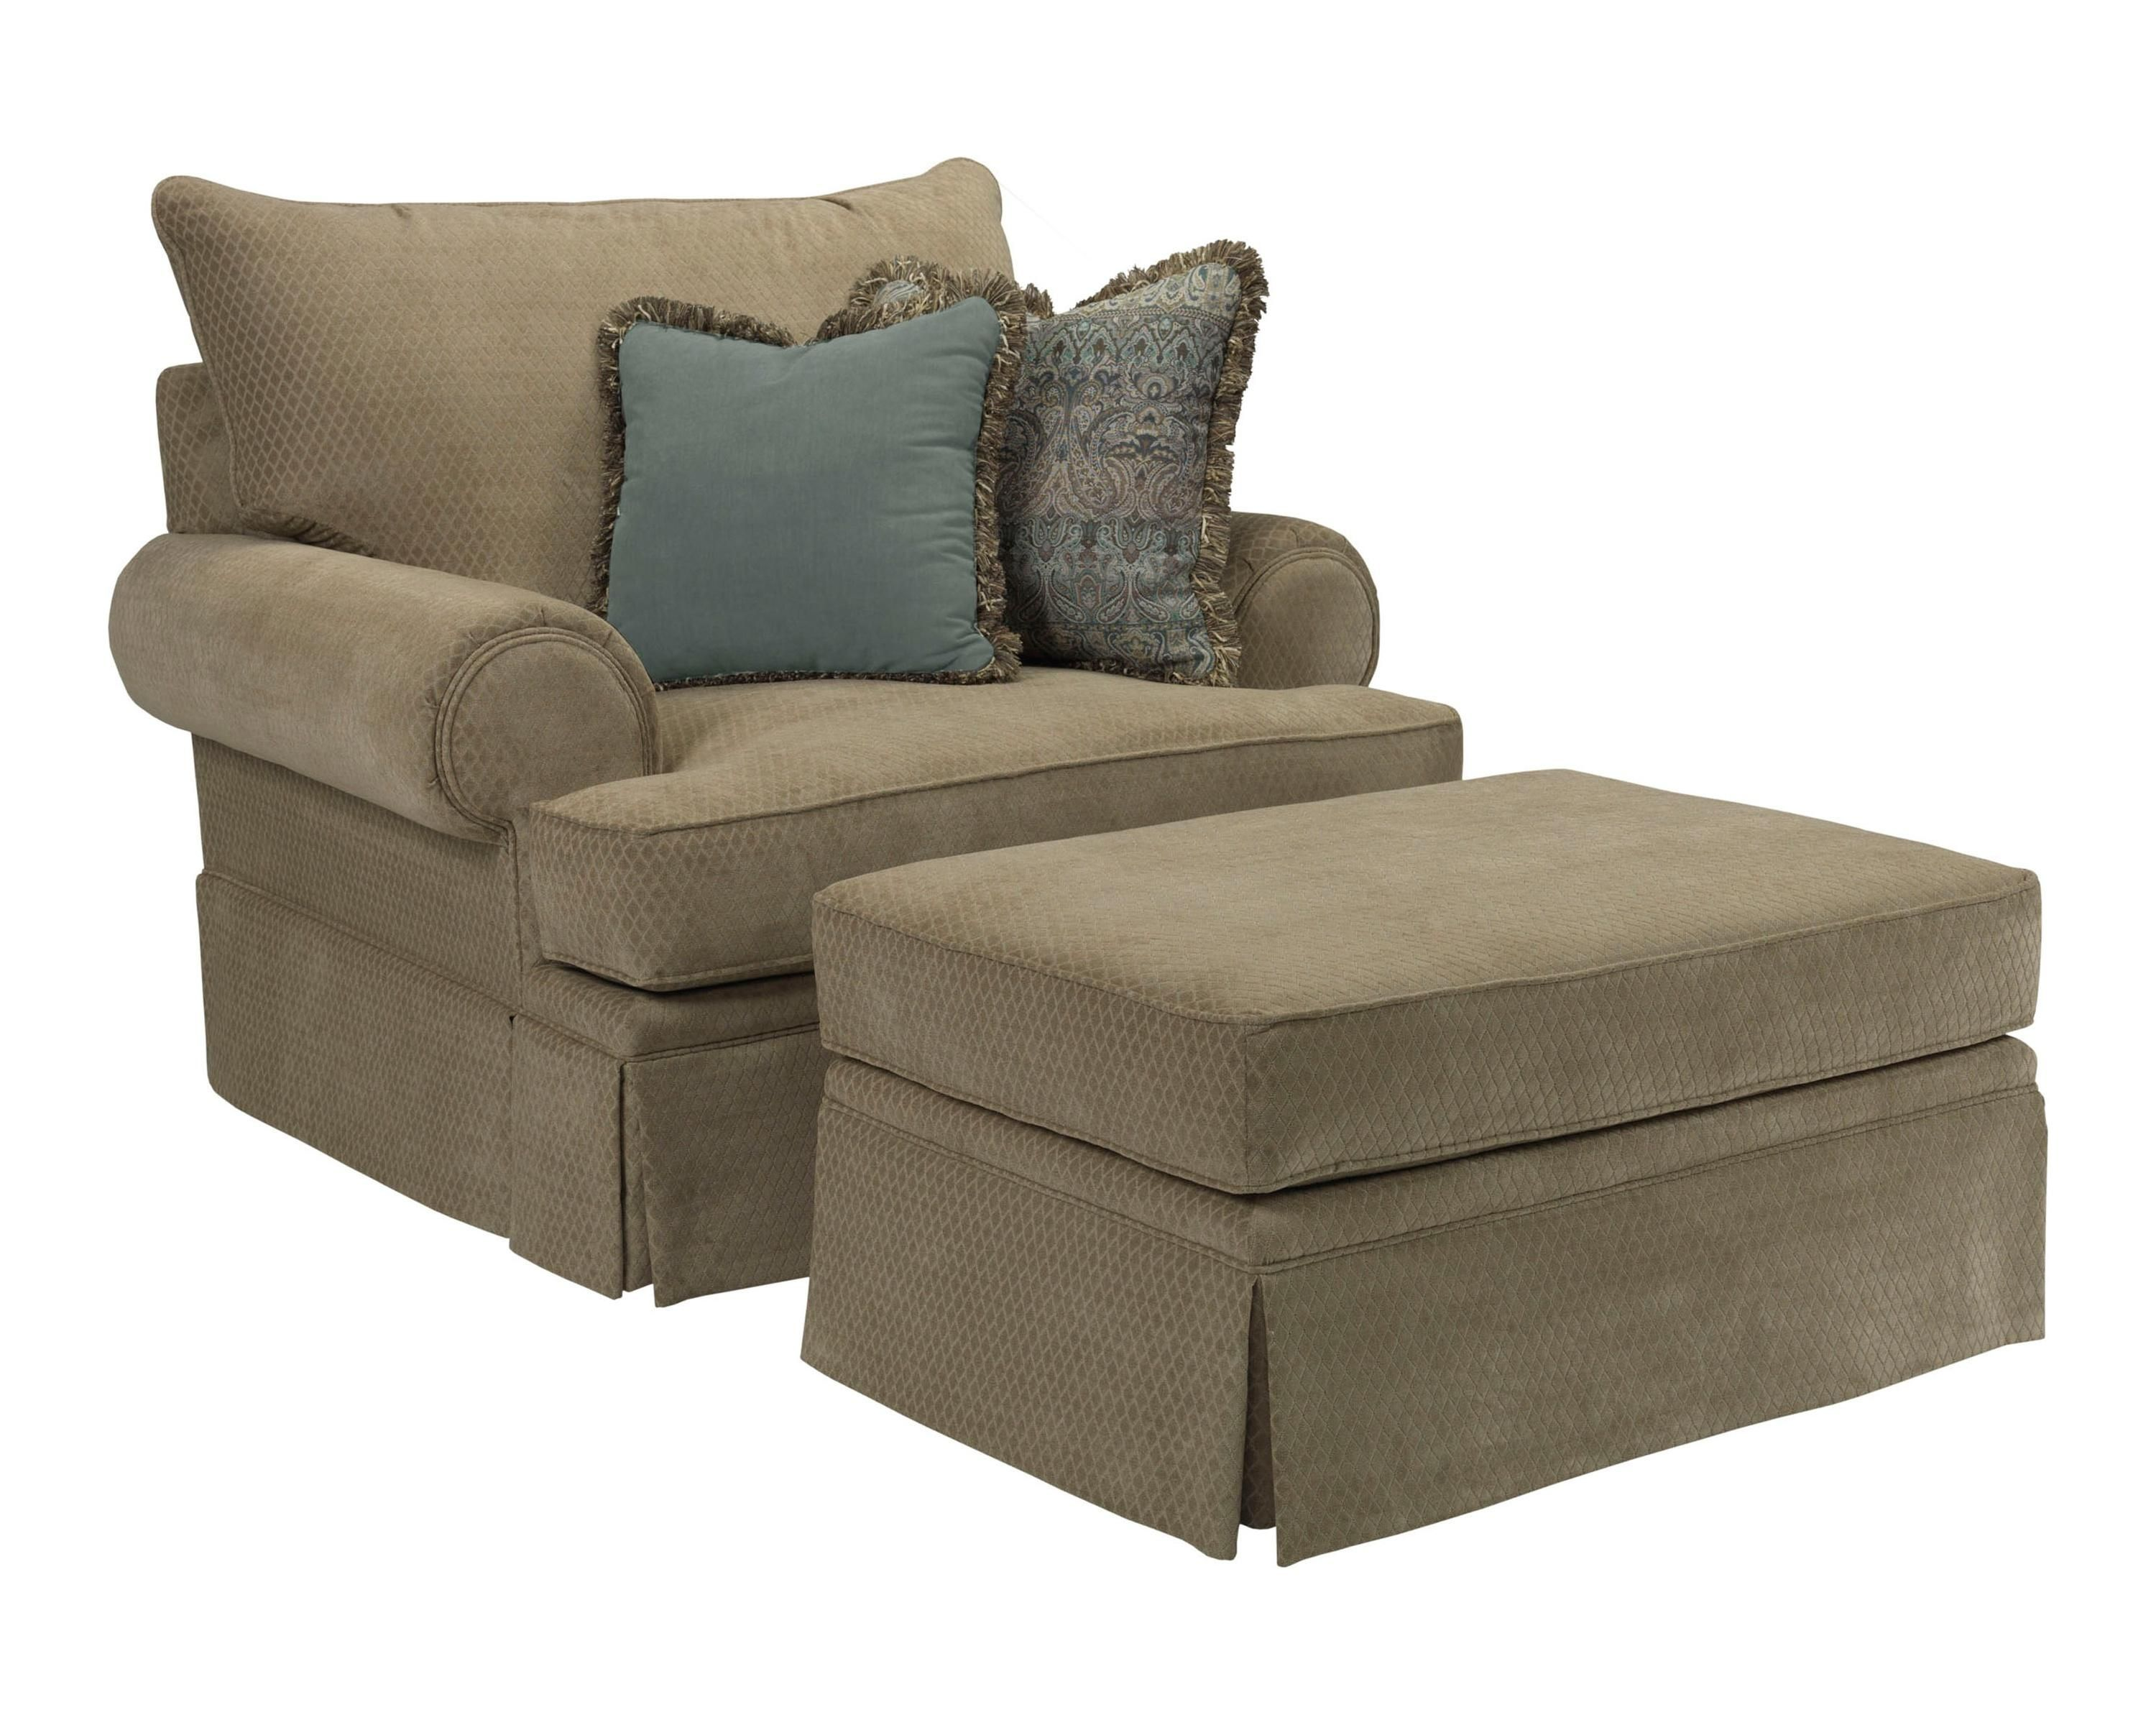 Helena Chair And A Half And Ottoman Set By Broyhill Furniture For The Home Pinterest